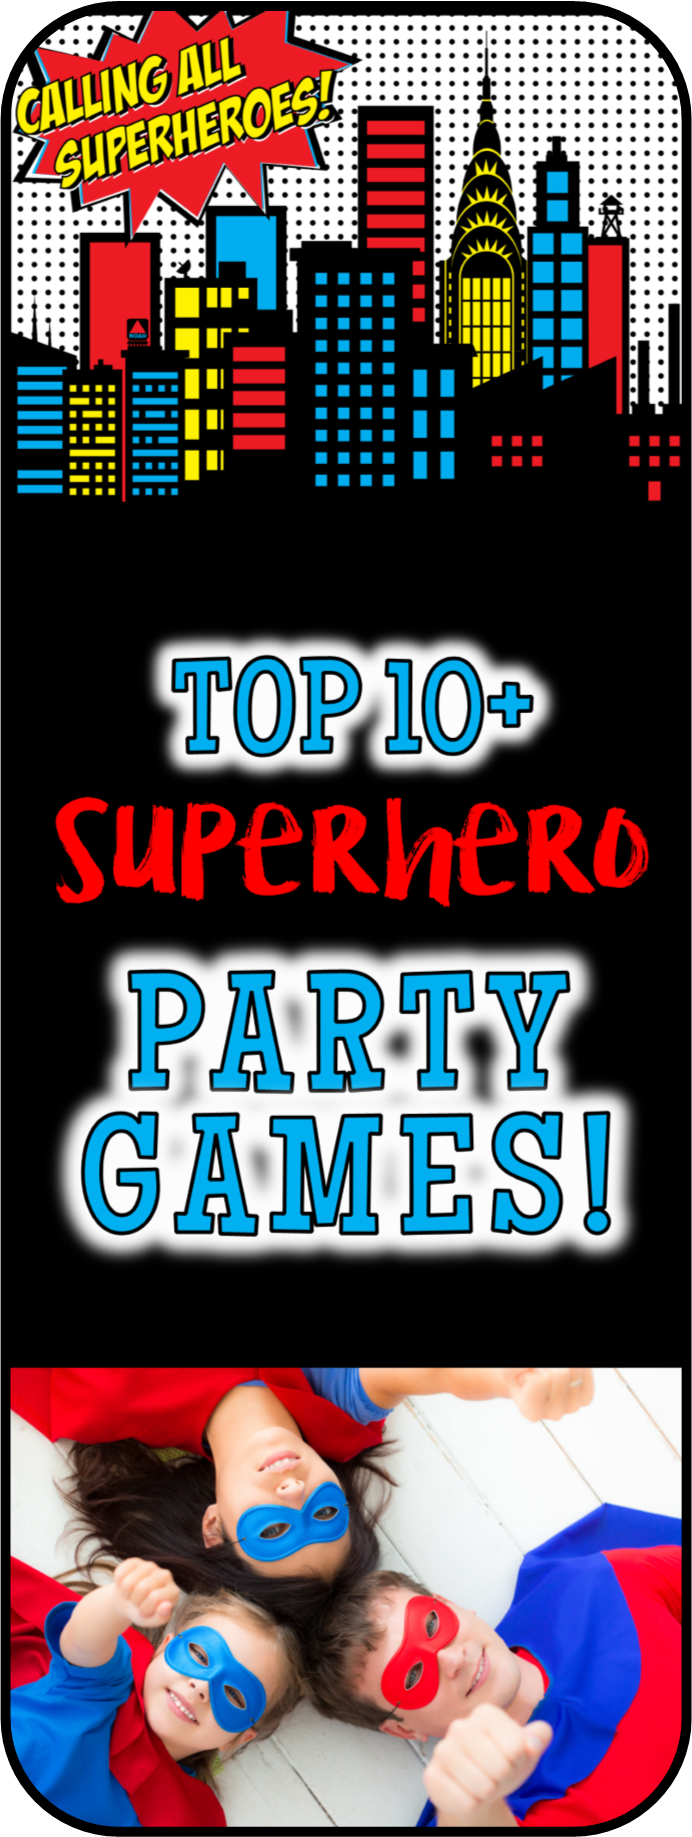 AVENGERS THEMED PARTY GAMES